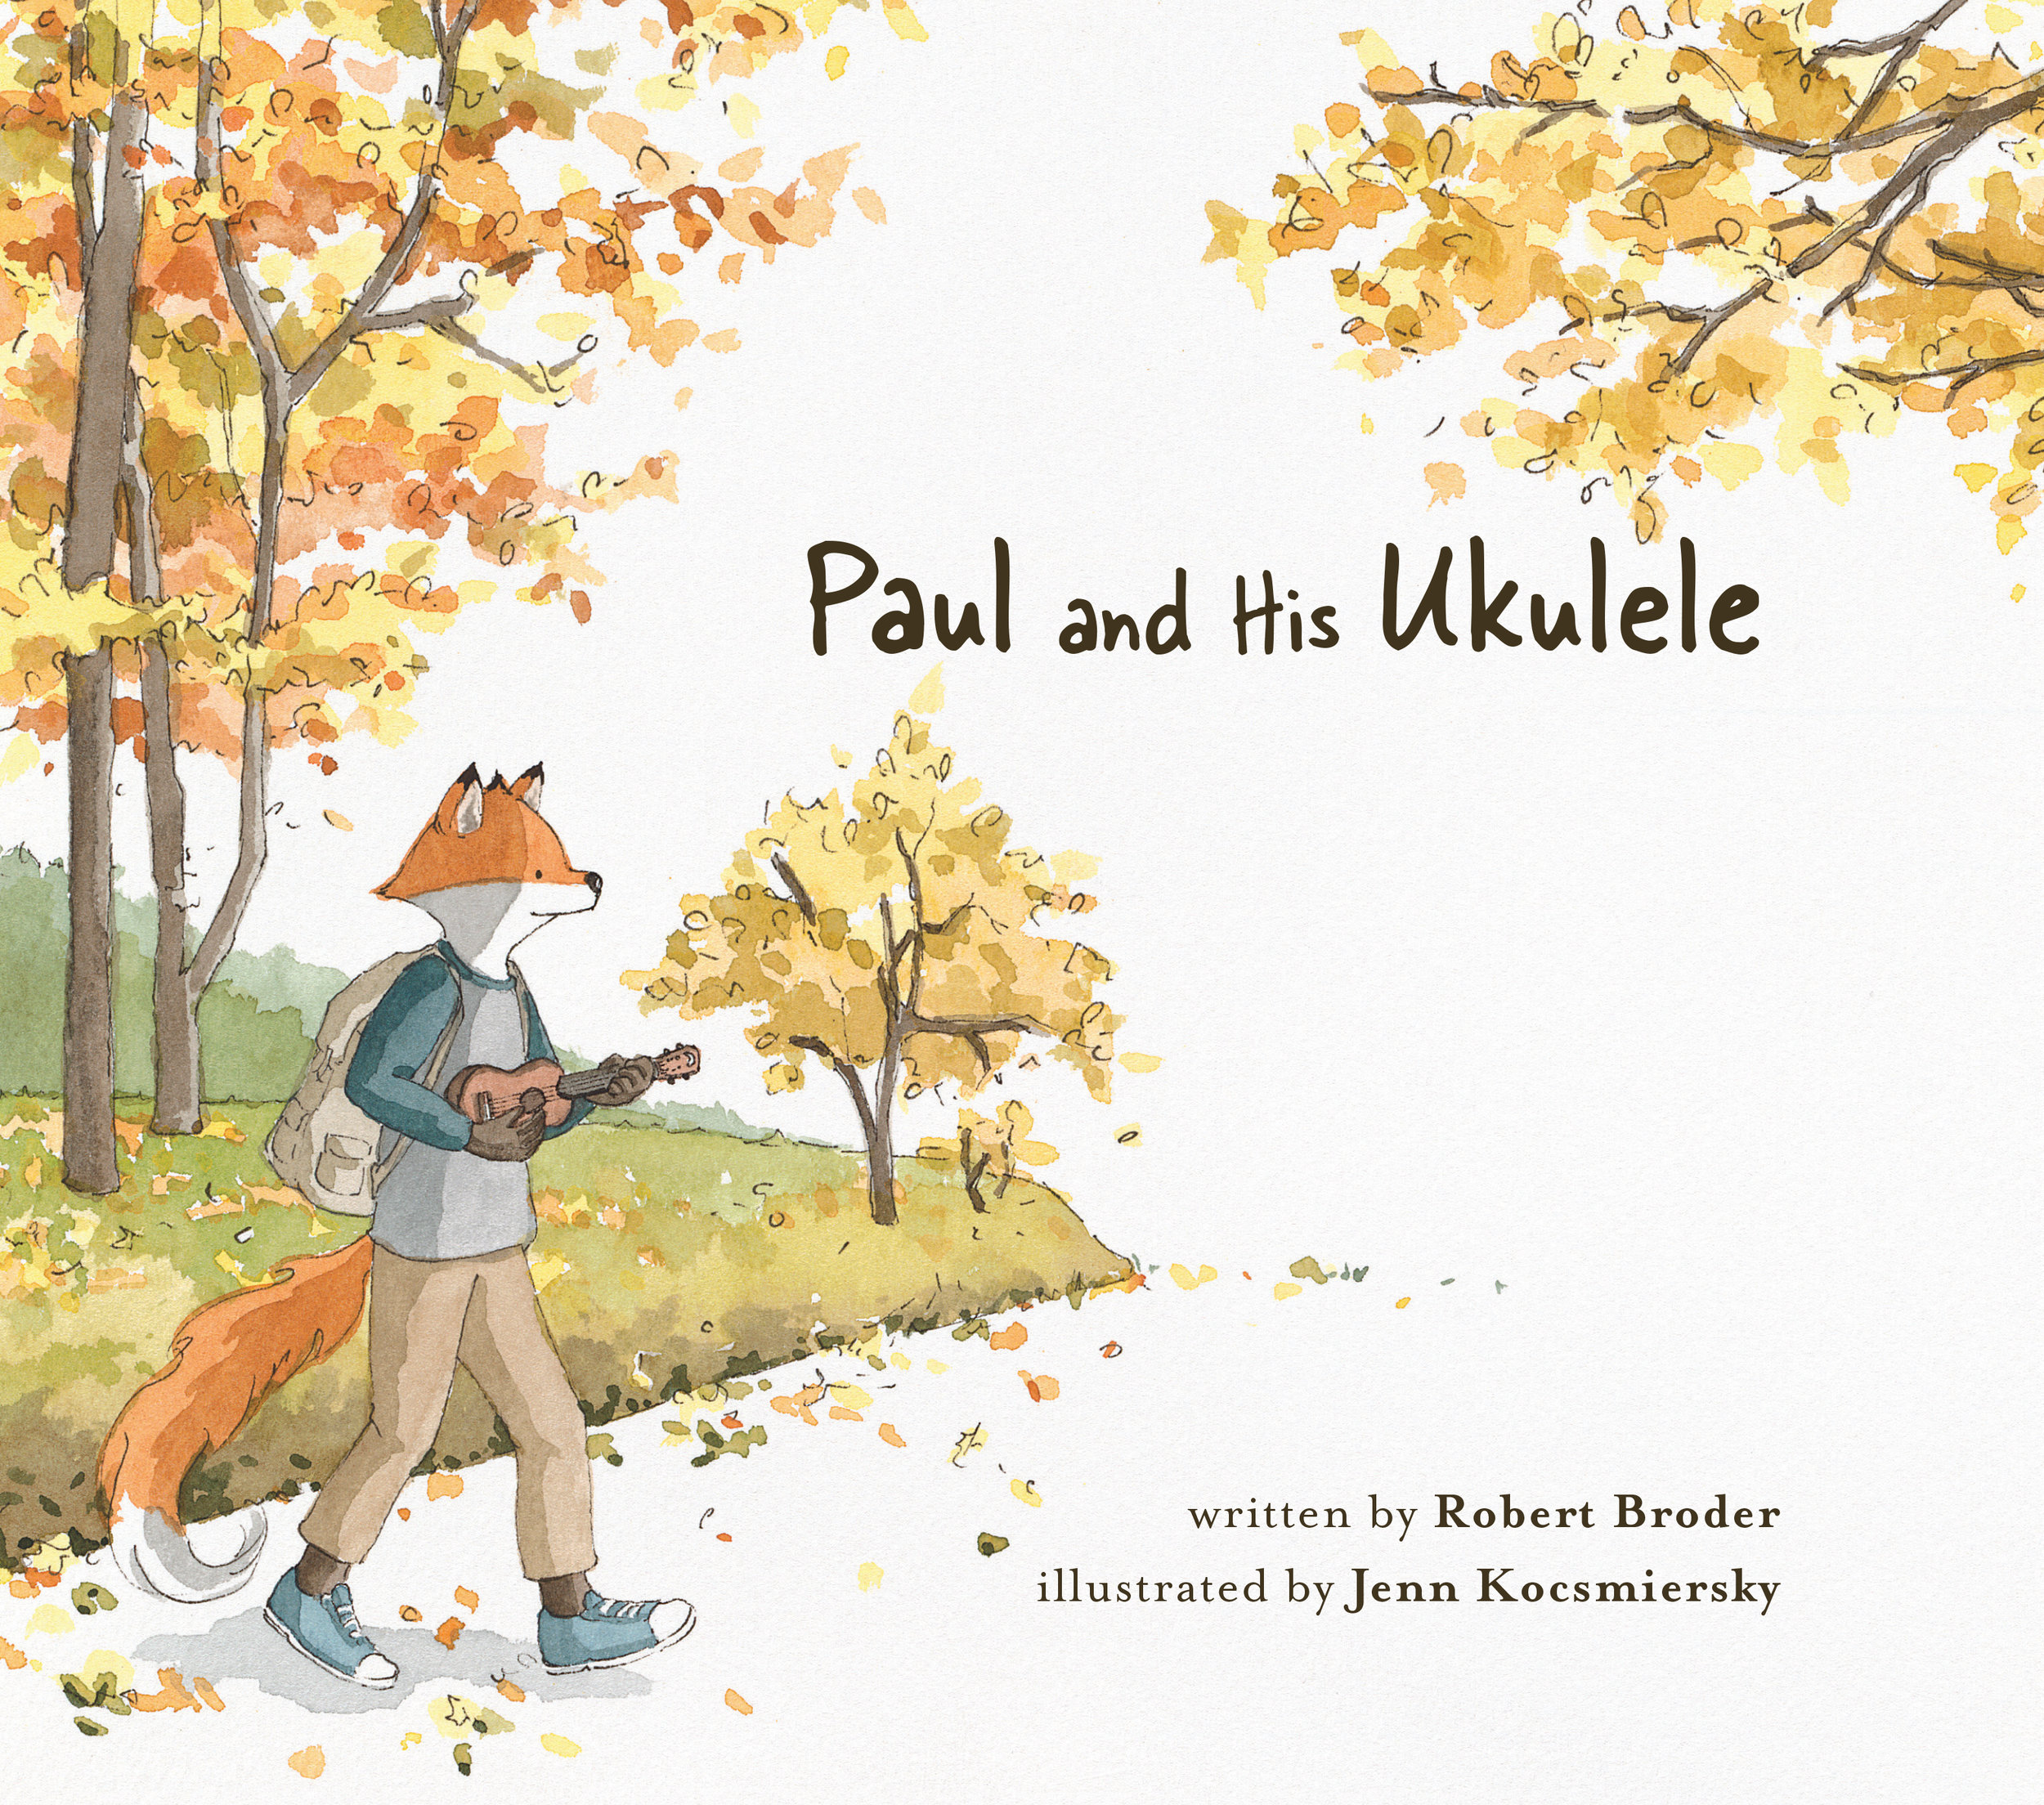 Paul and His Ukulele  is available now. Click the cover for more information.